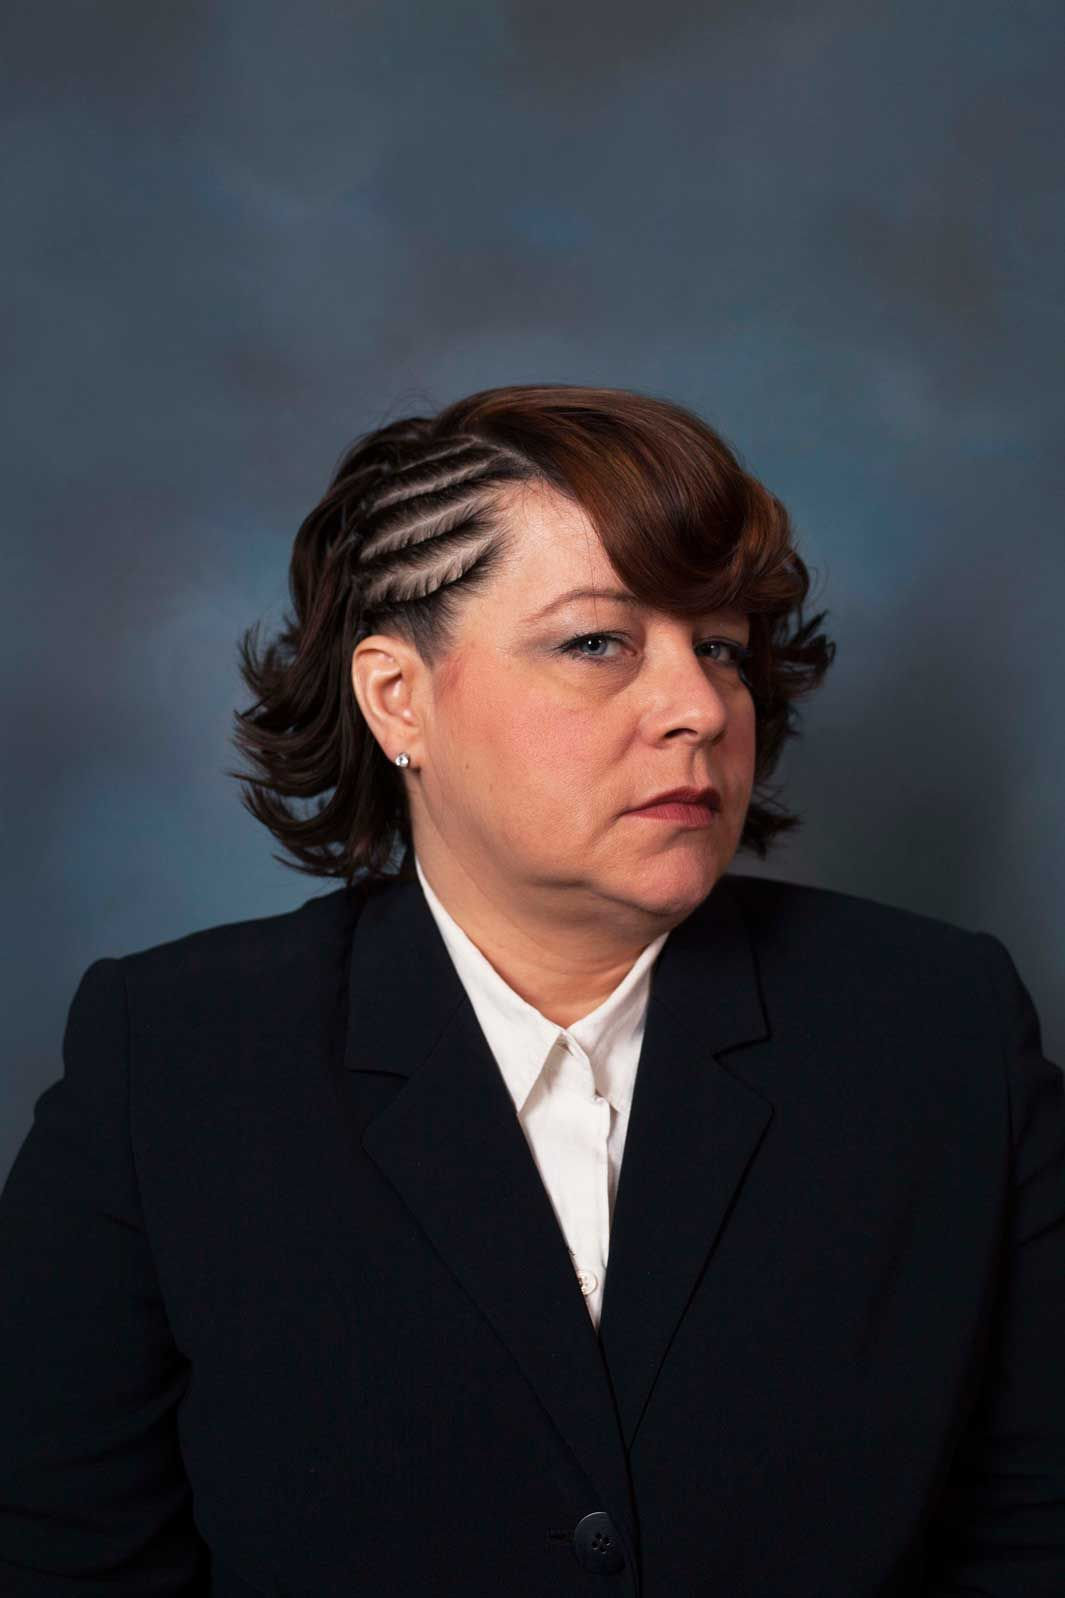 Corporate Portraits Of White Women With Black Hairstyles Black